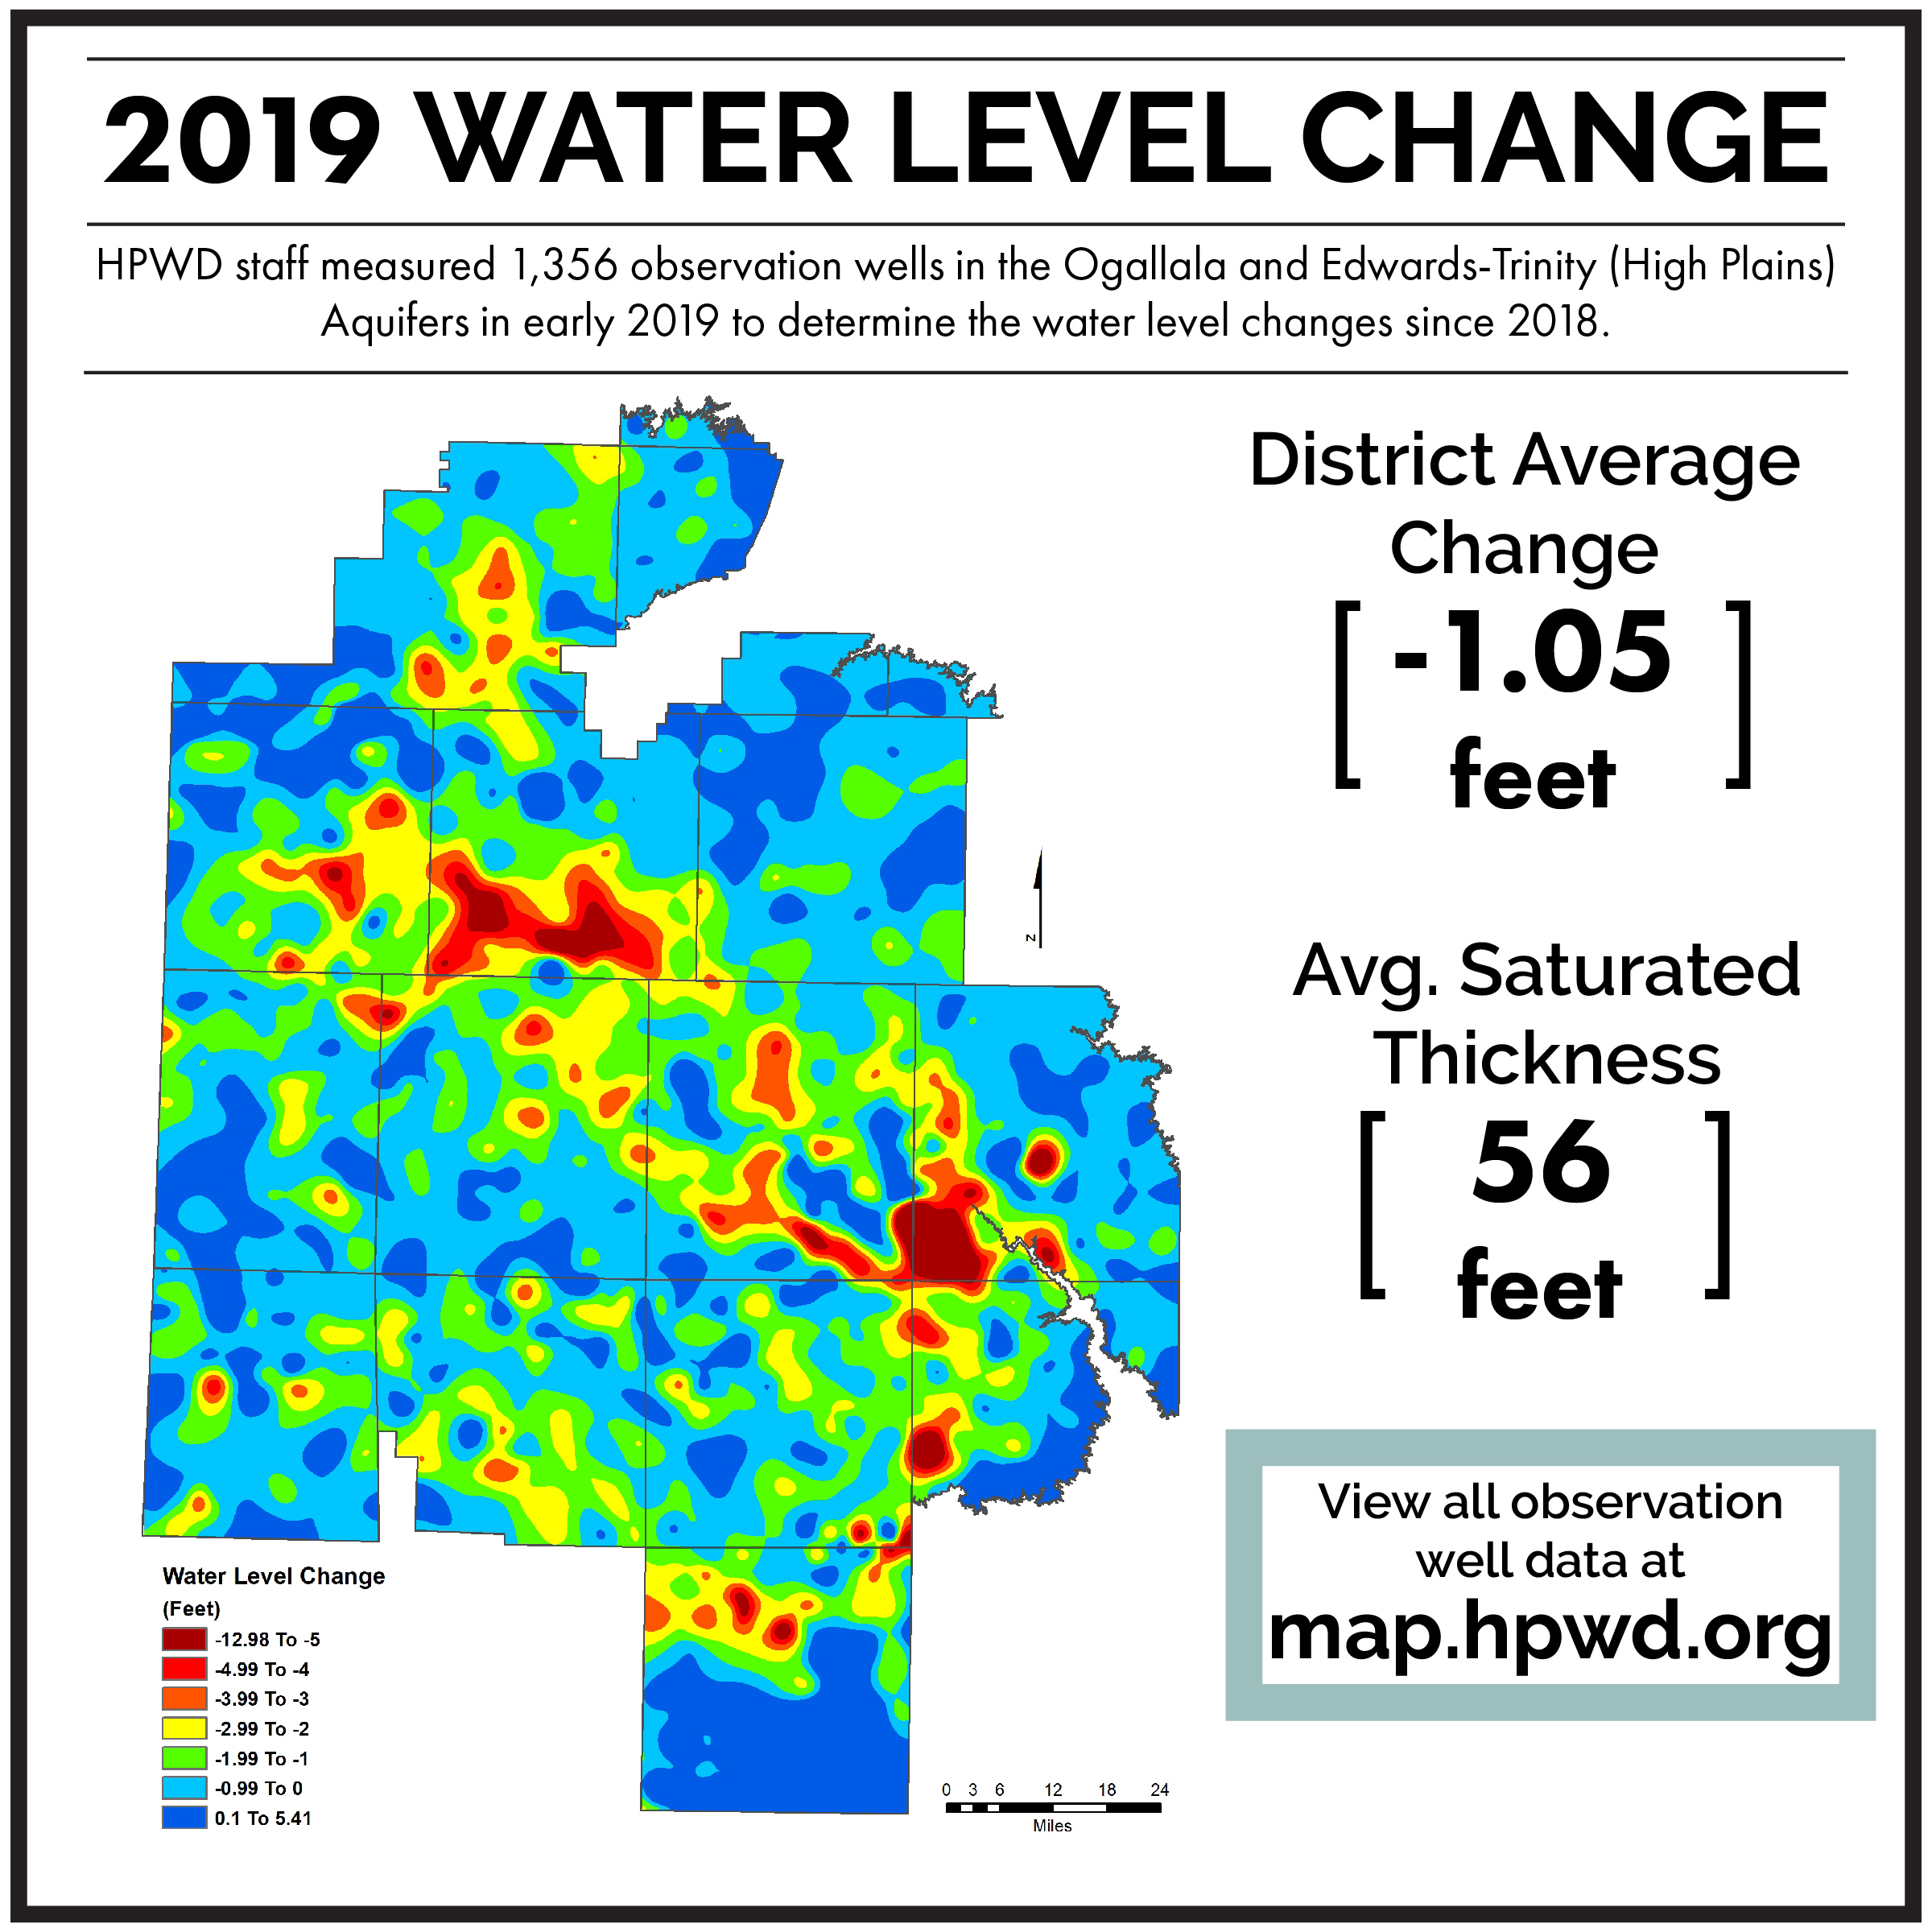 Check out water levels near your property by visiting  map.hpwd.org